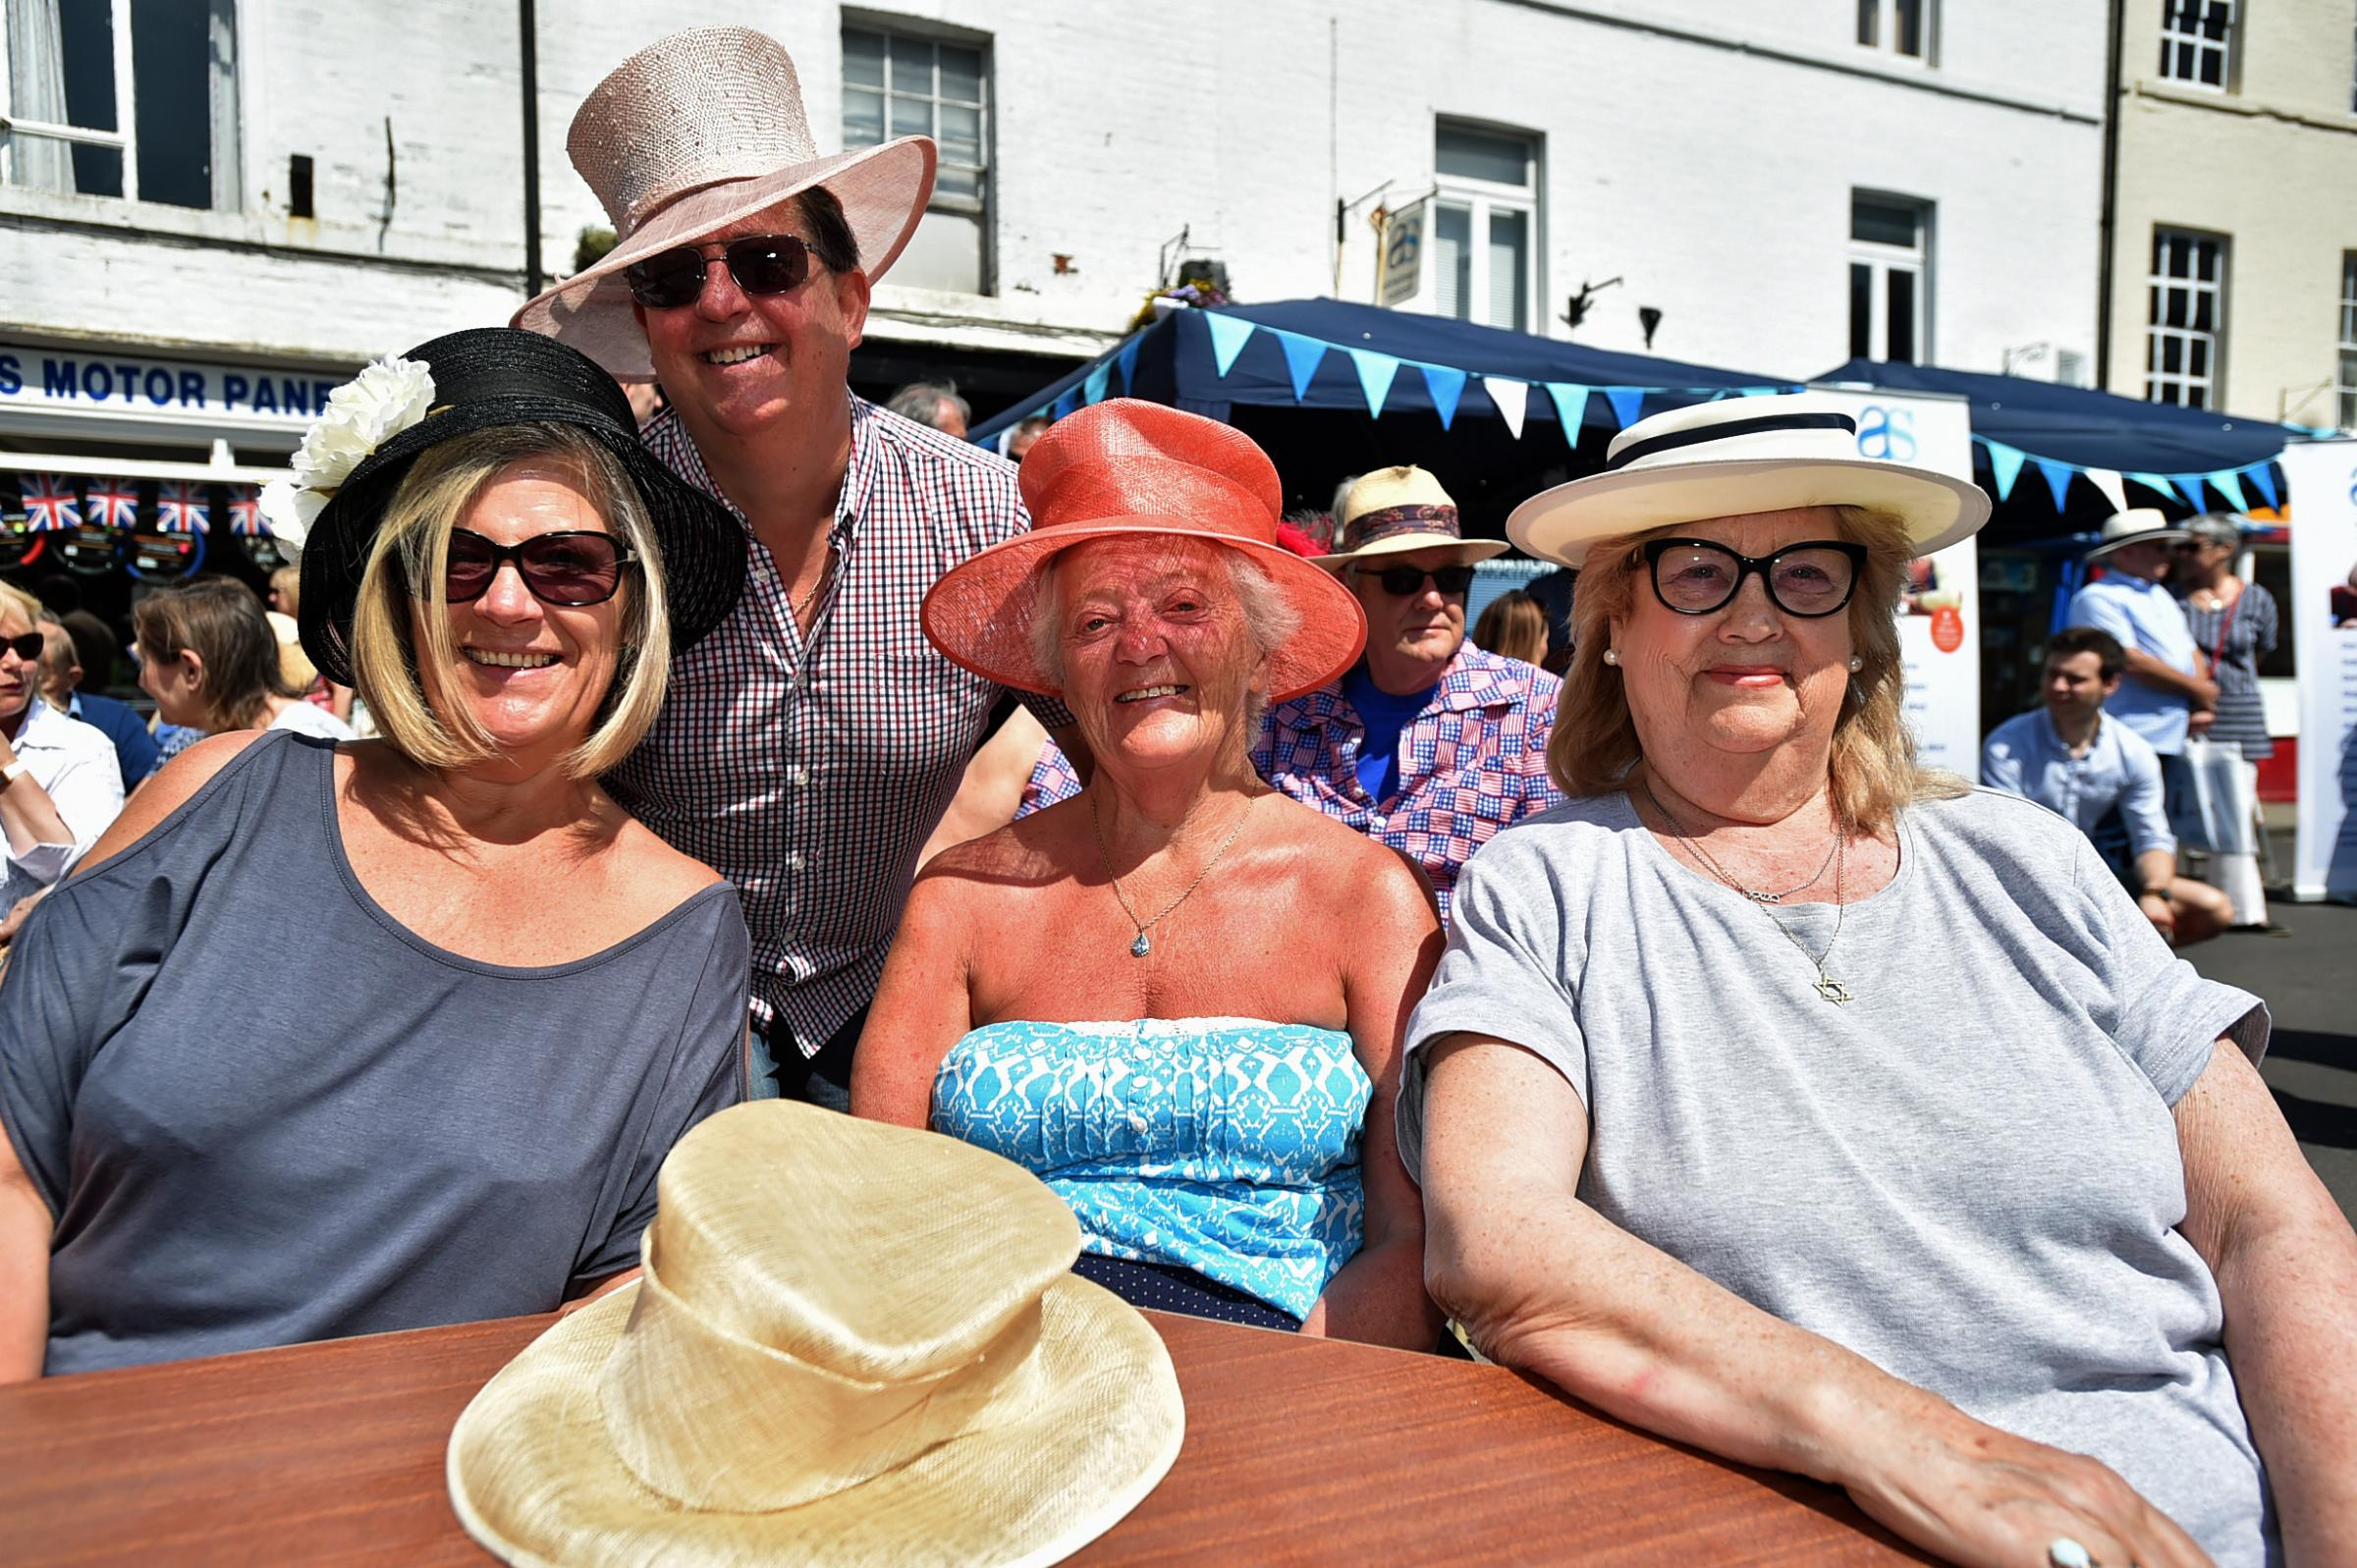 L-R Tracy Wilson, Paul Wilson, Kathy Kearne and Jeannette Von Berg celebrate the Royal Wedding of Harry and Meghan at Sidmouth Street Devizes street party Photo: Diane Vose